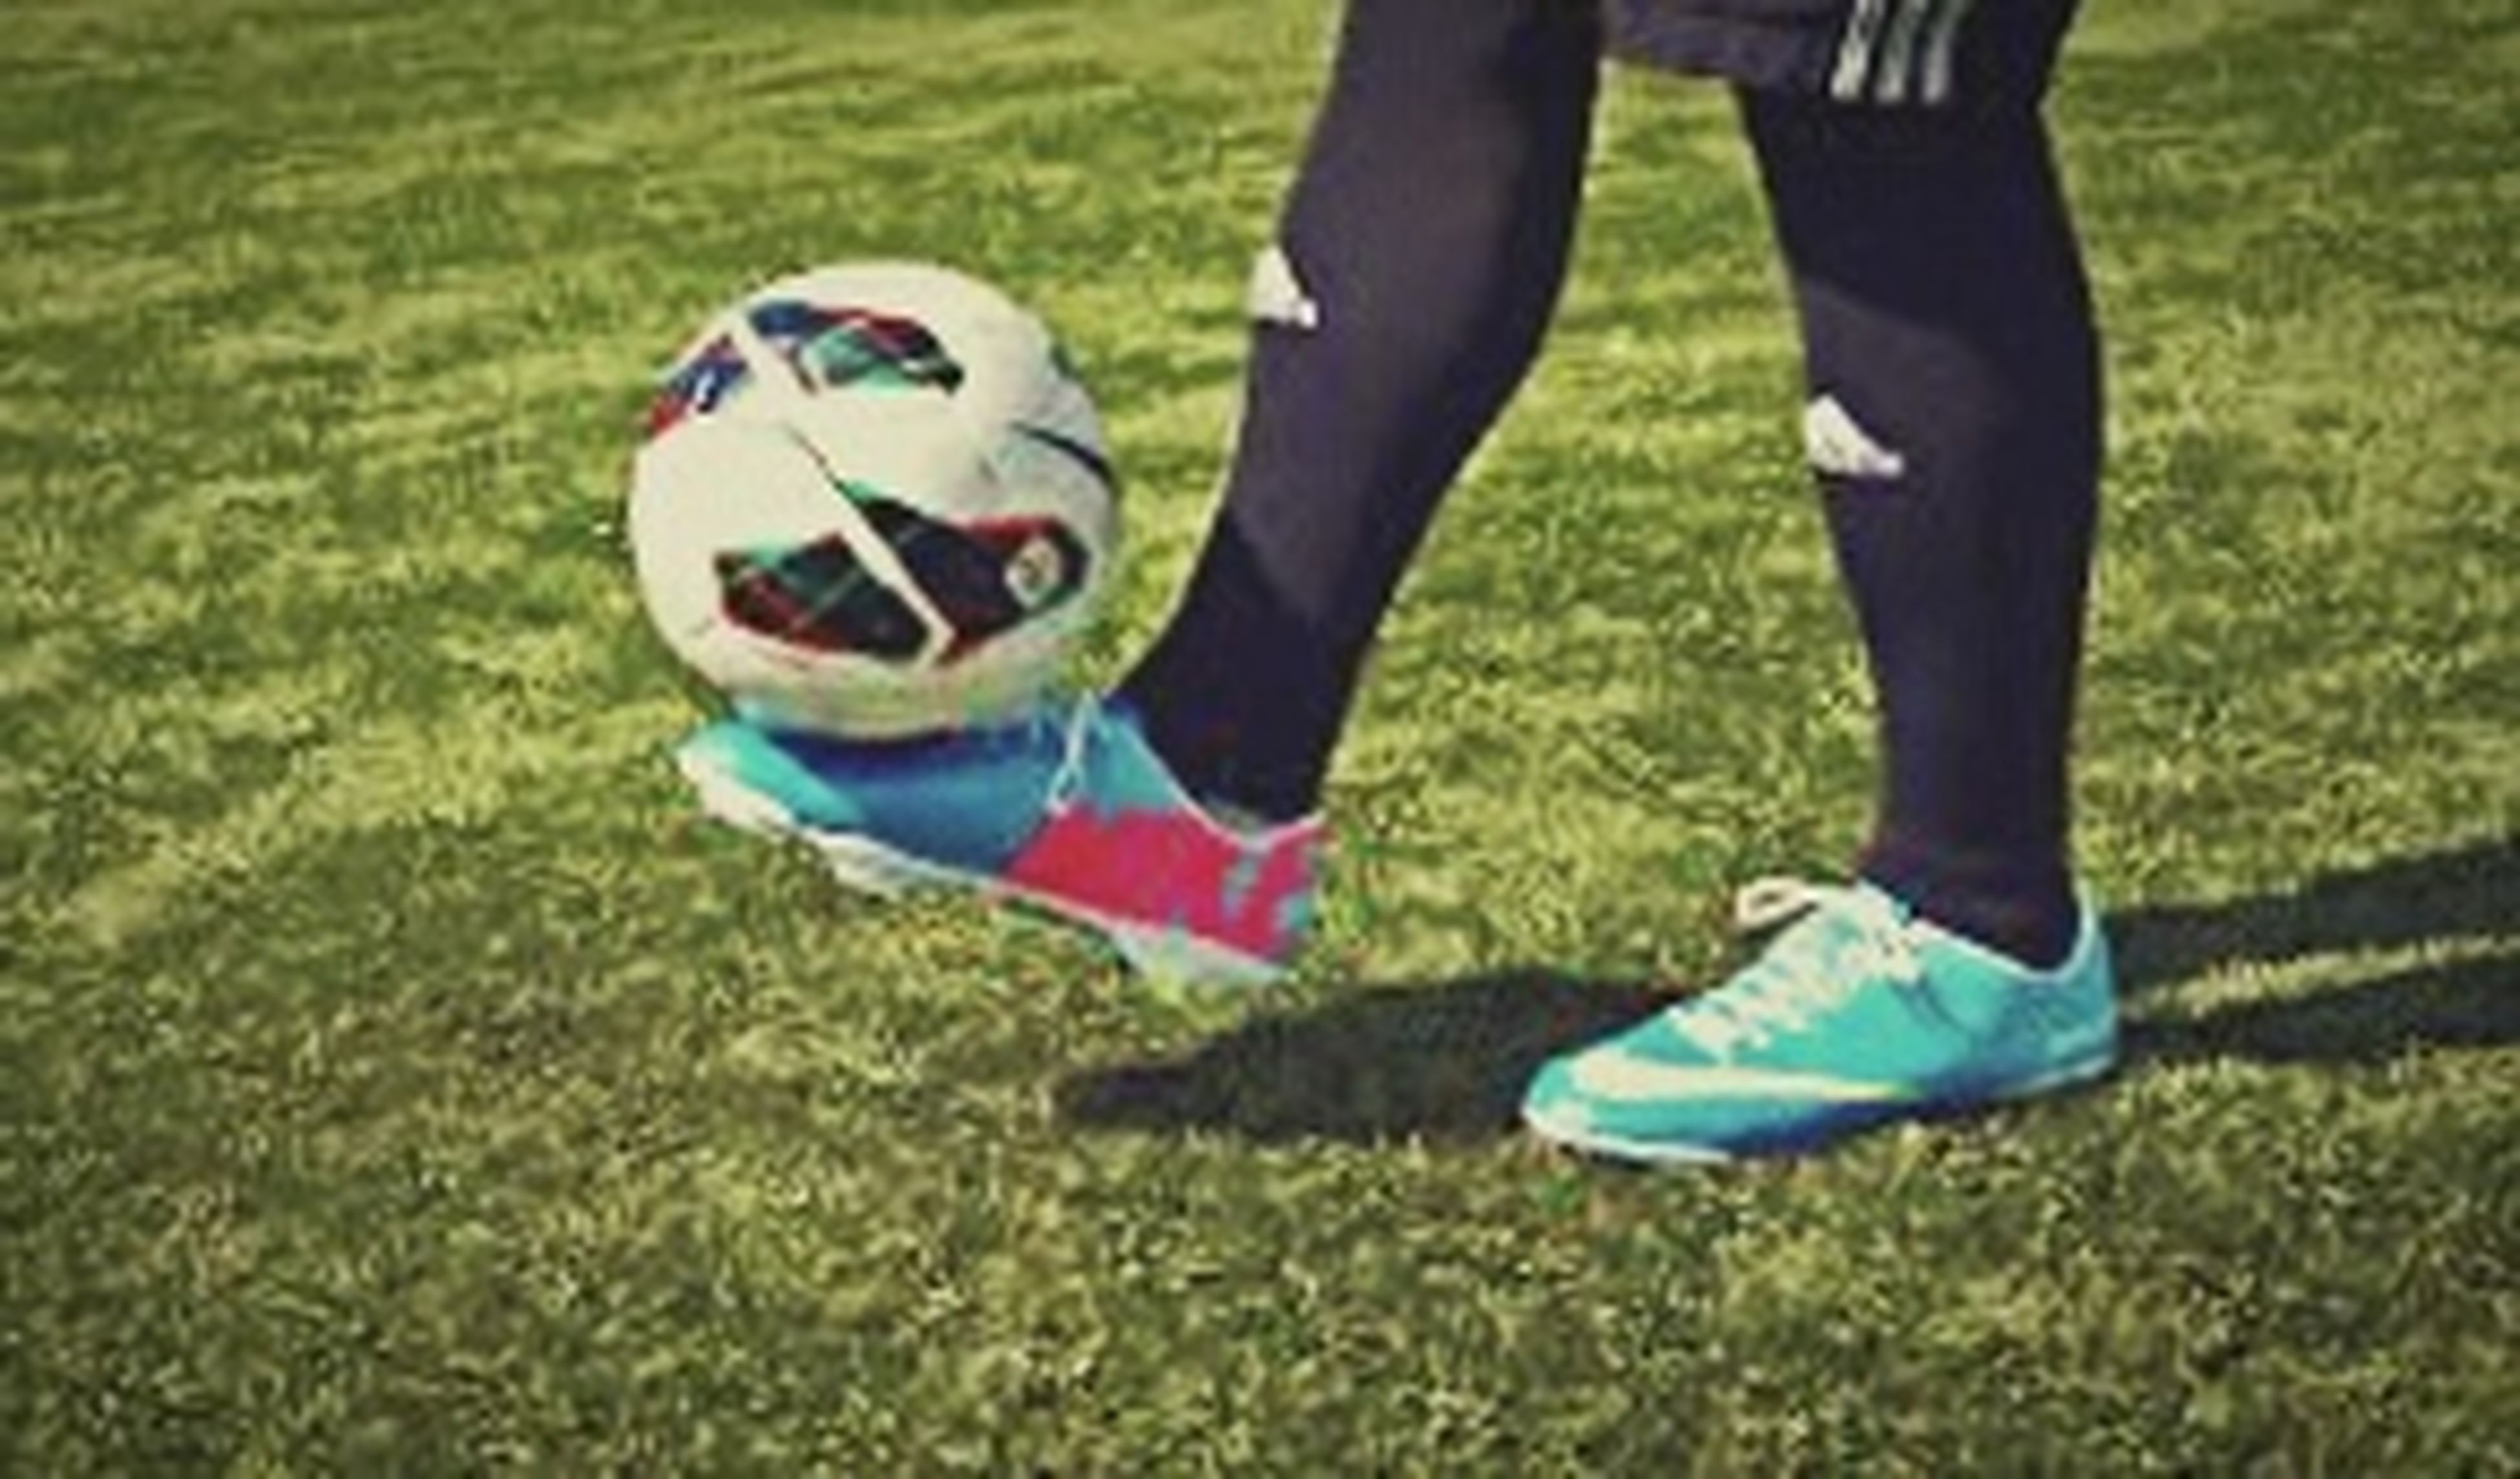 grass, lifestyles, leisure activity, low section, field, grassy, childhood, person, sport, men, shoe, casual clothing, green color, boys, day, outdoors, playing, park - man made space